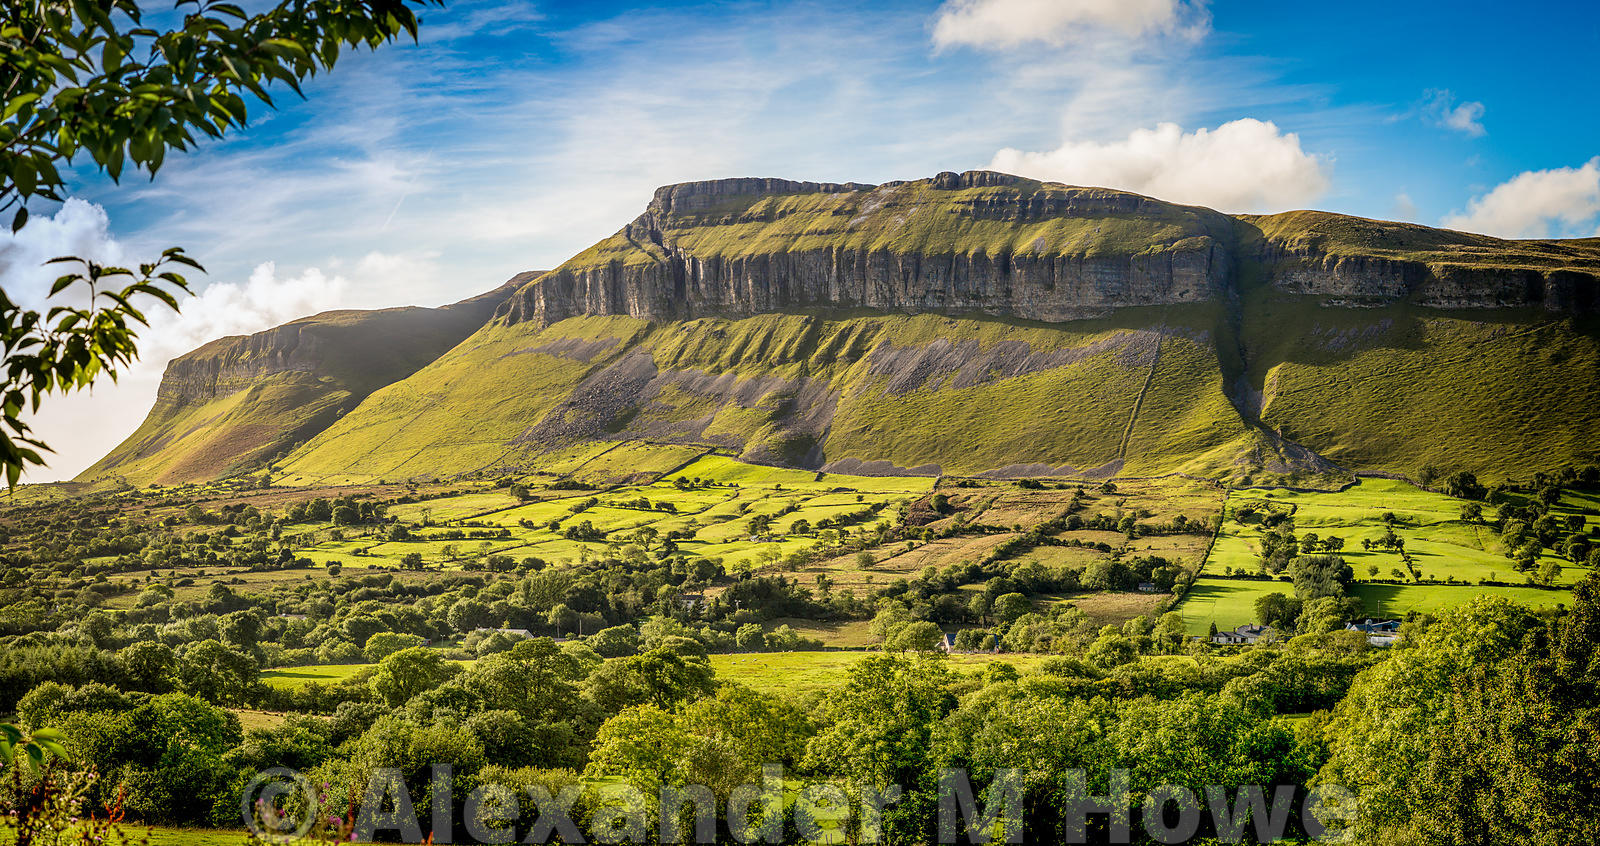 Part of the Dartry Mountains in County Sligo surrounded by lush pasture and tress